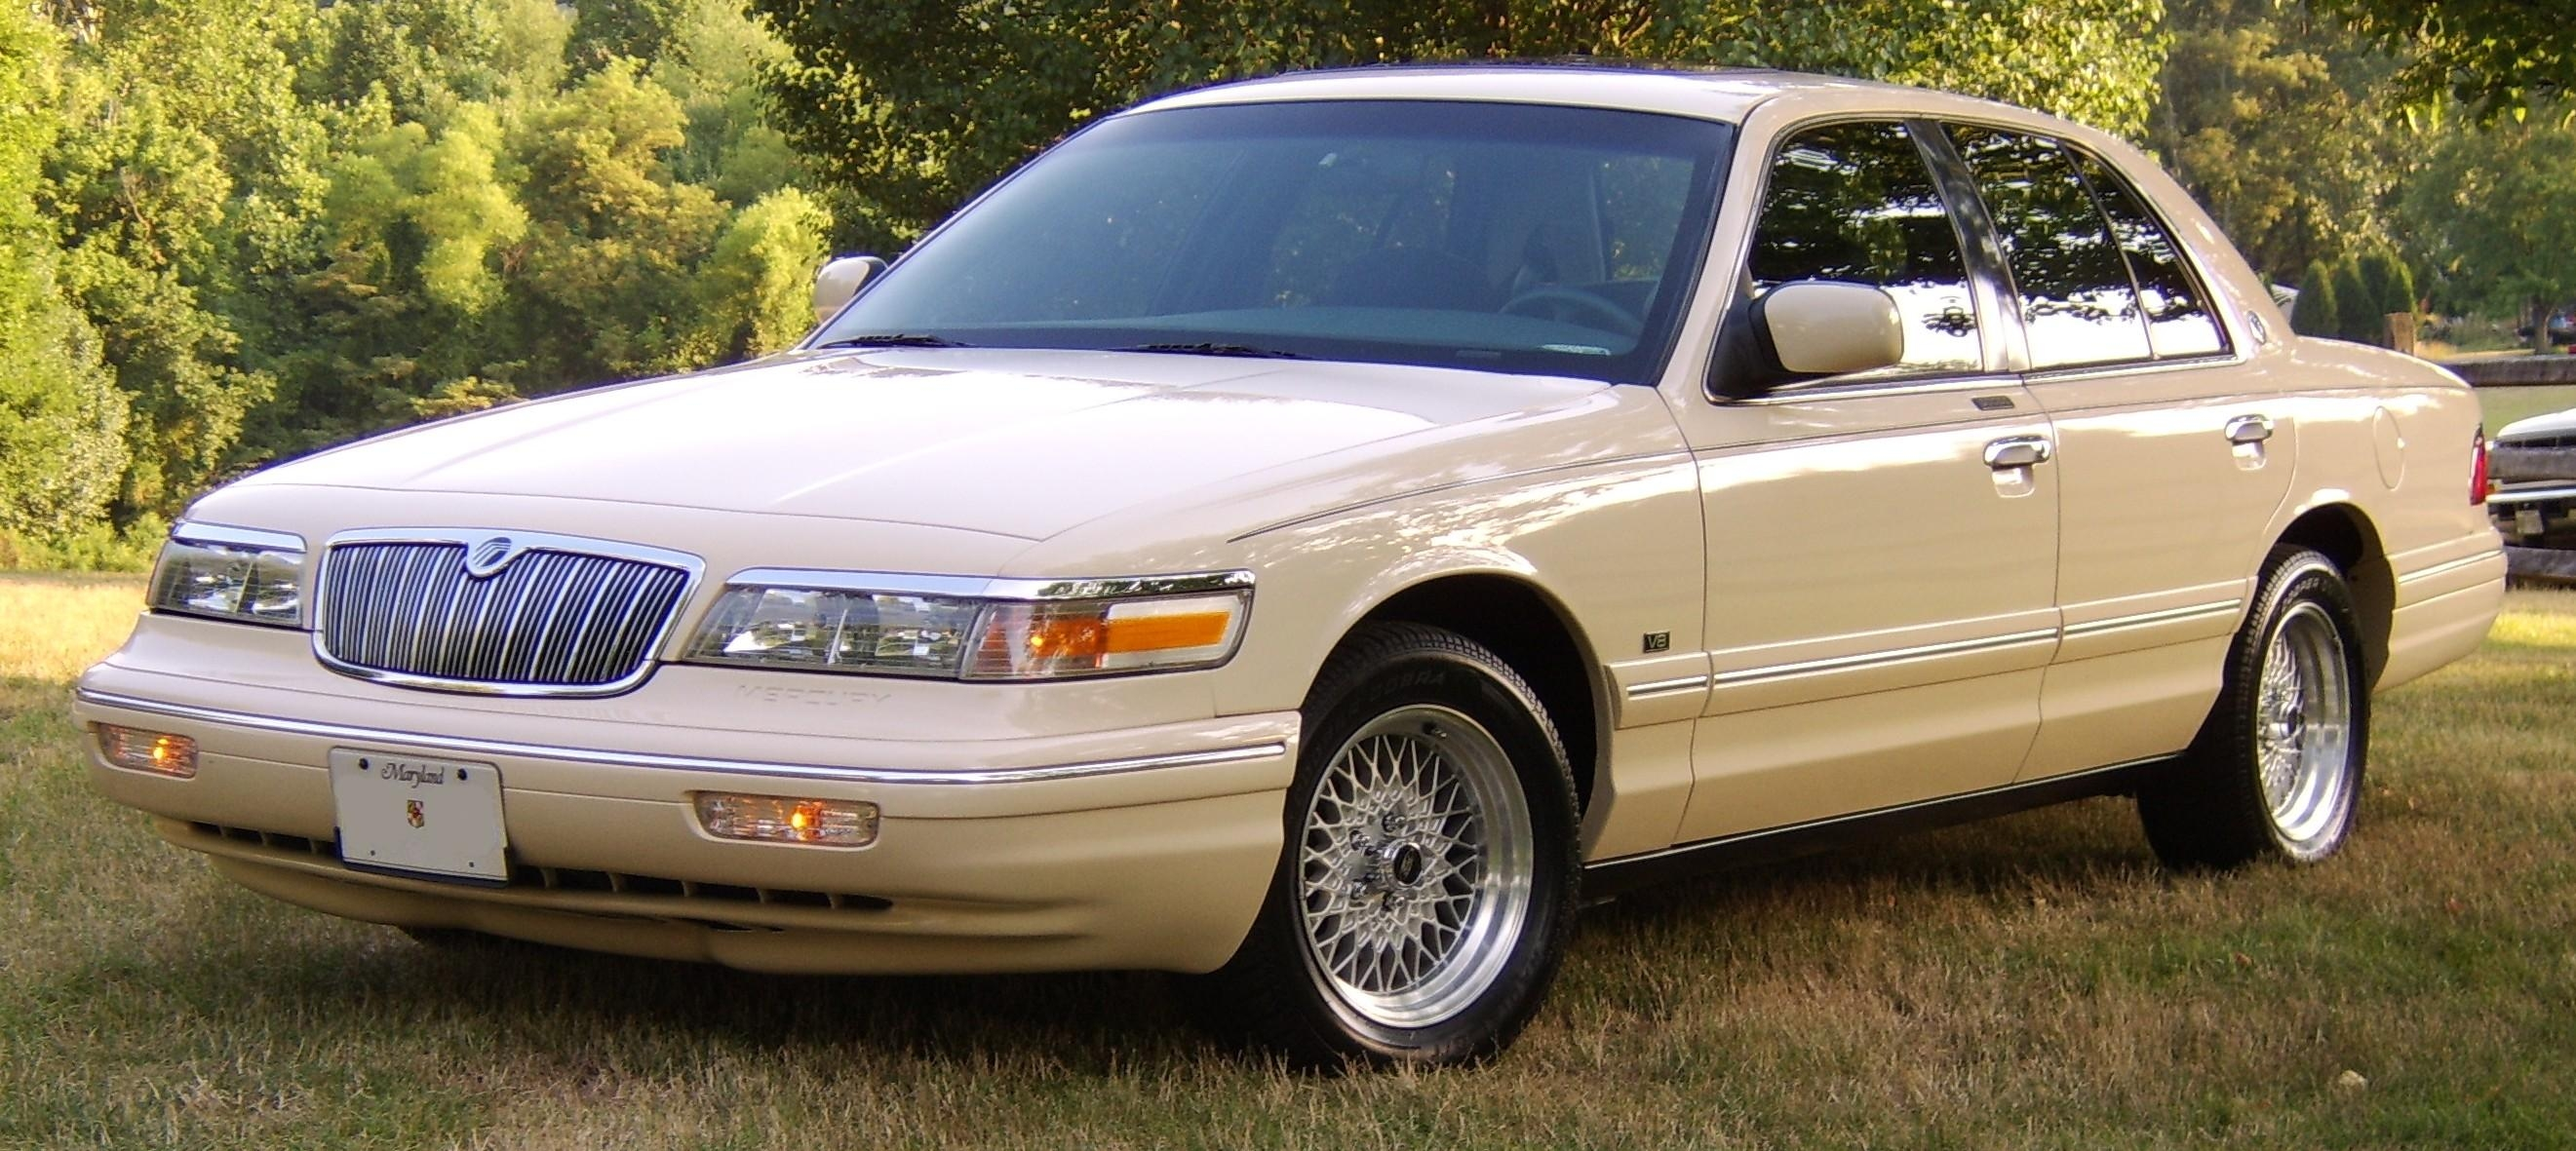 1995 Mercury Grand Marquis >> dRock96Marquis 1996 Mercury Grand Marquis Specs, Photos ...